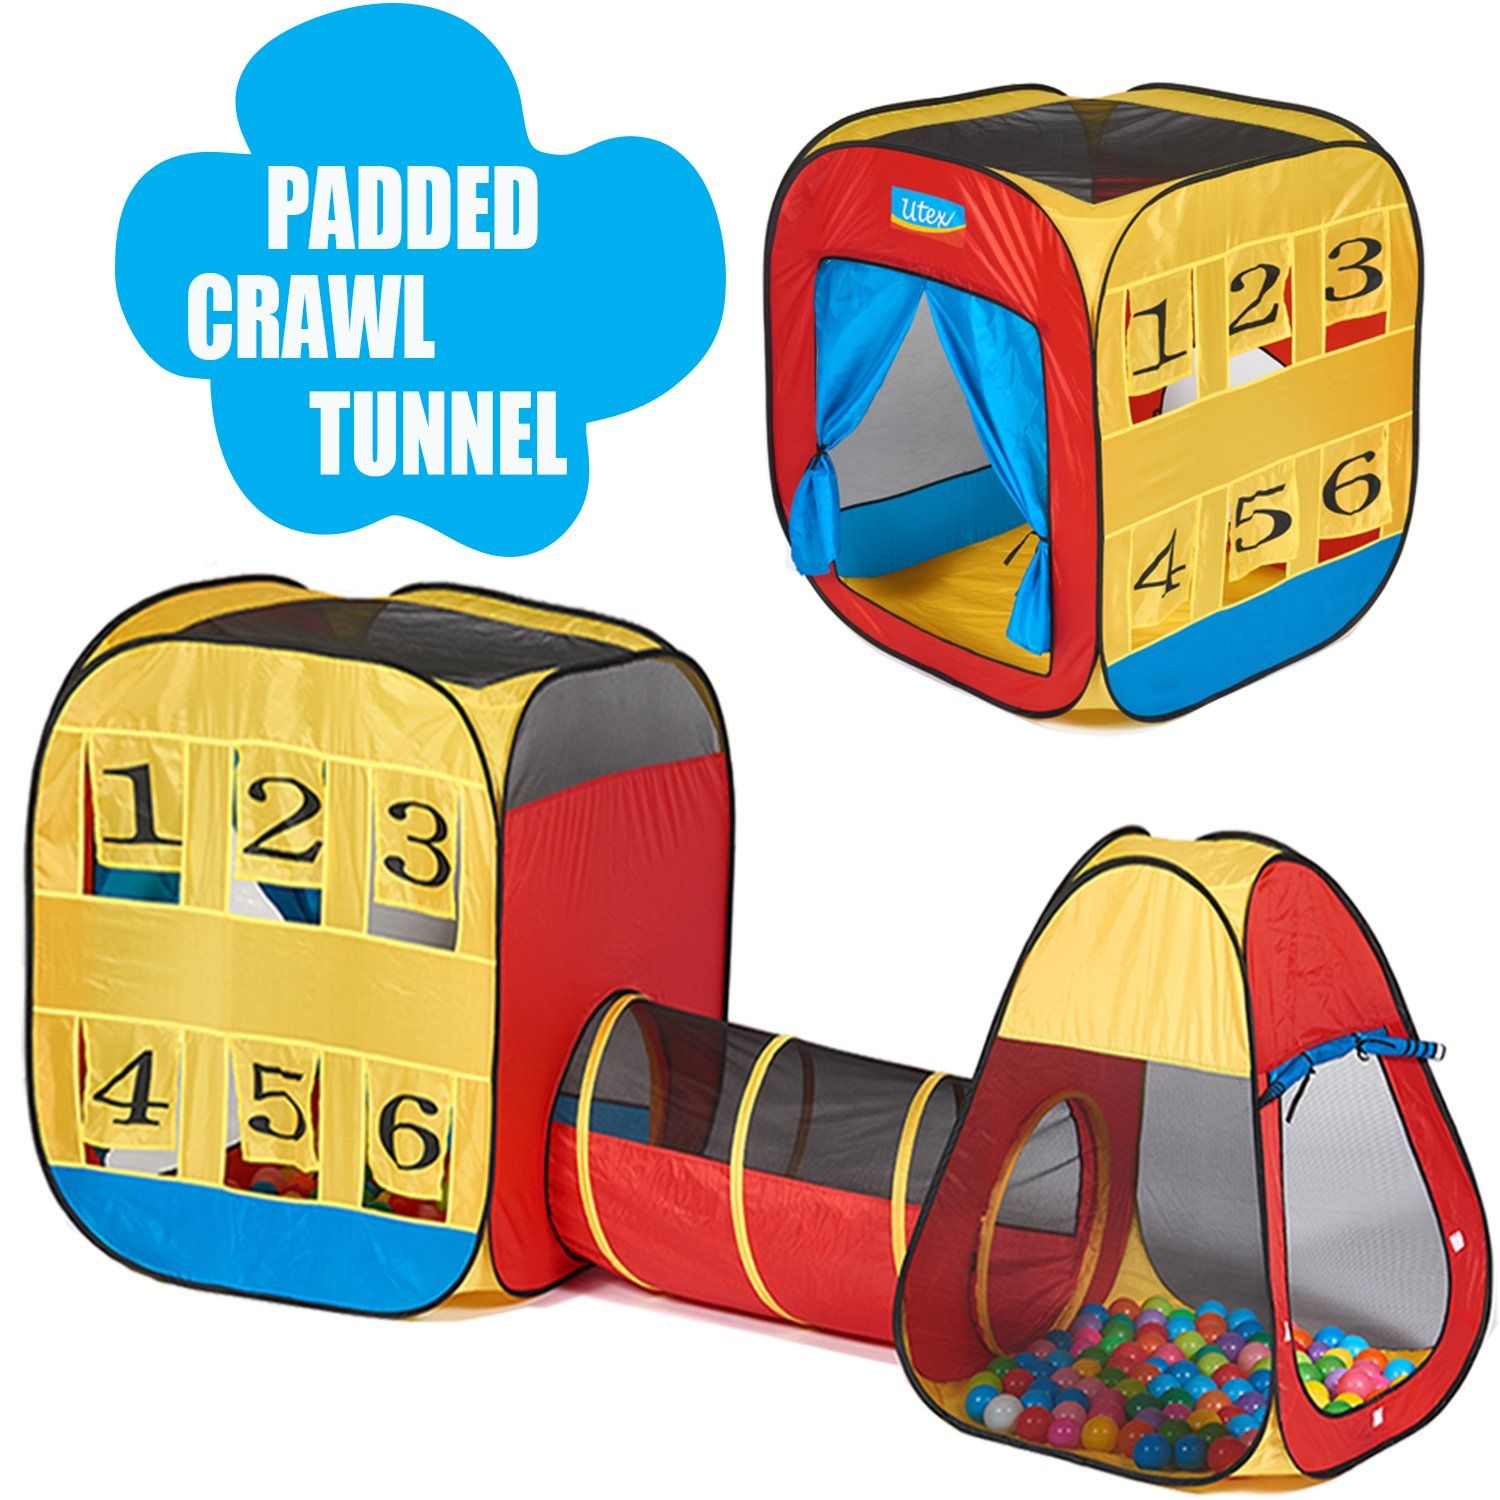 UTEX 3pc Kids Play Tent with Padded Crawl Tunnel u2013 Children Playhouse for Boys Girls  sc 1 st  Pinterest & UTEX 3pc Kids Play Tent with Padded Crawl Tunnel u2013 Children ...